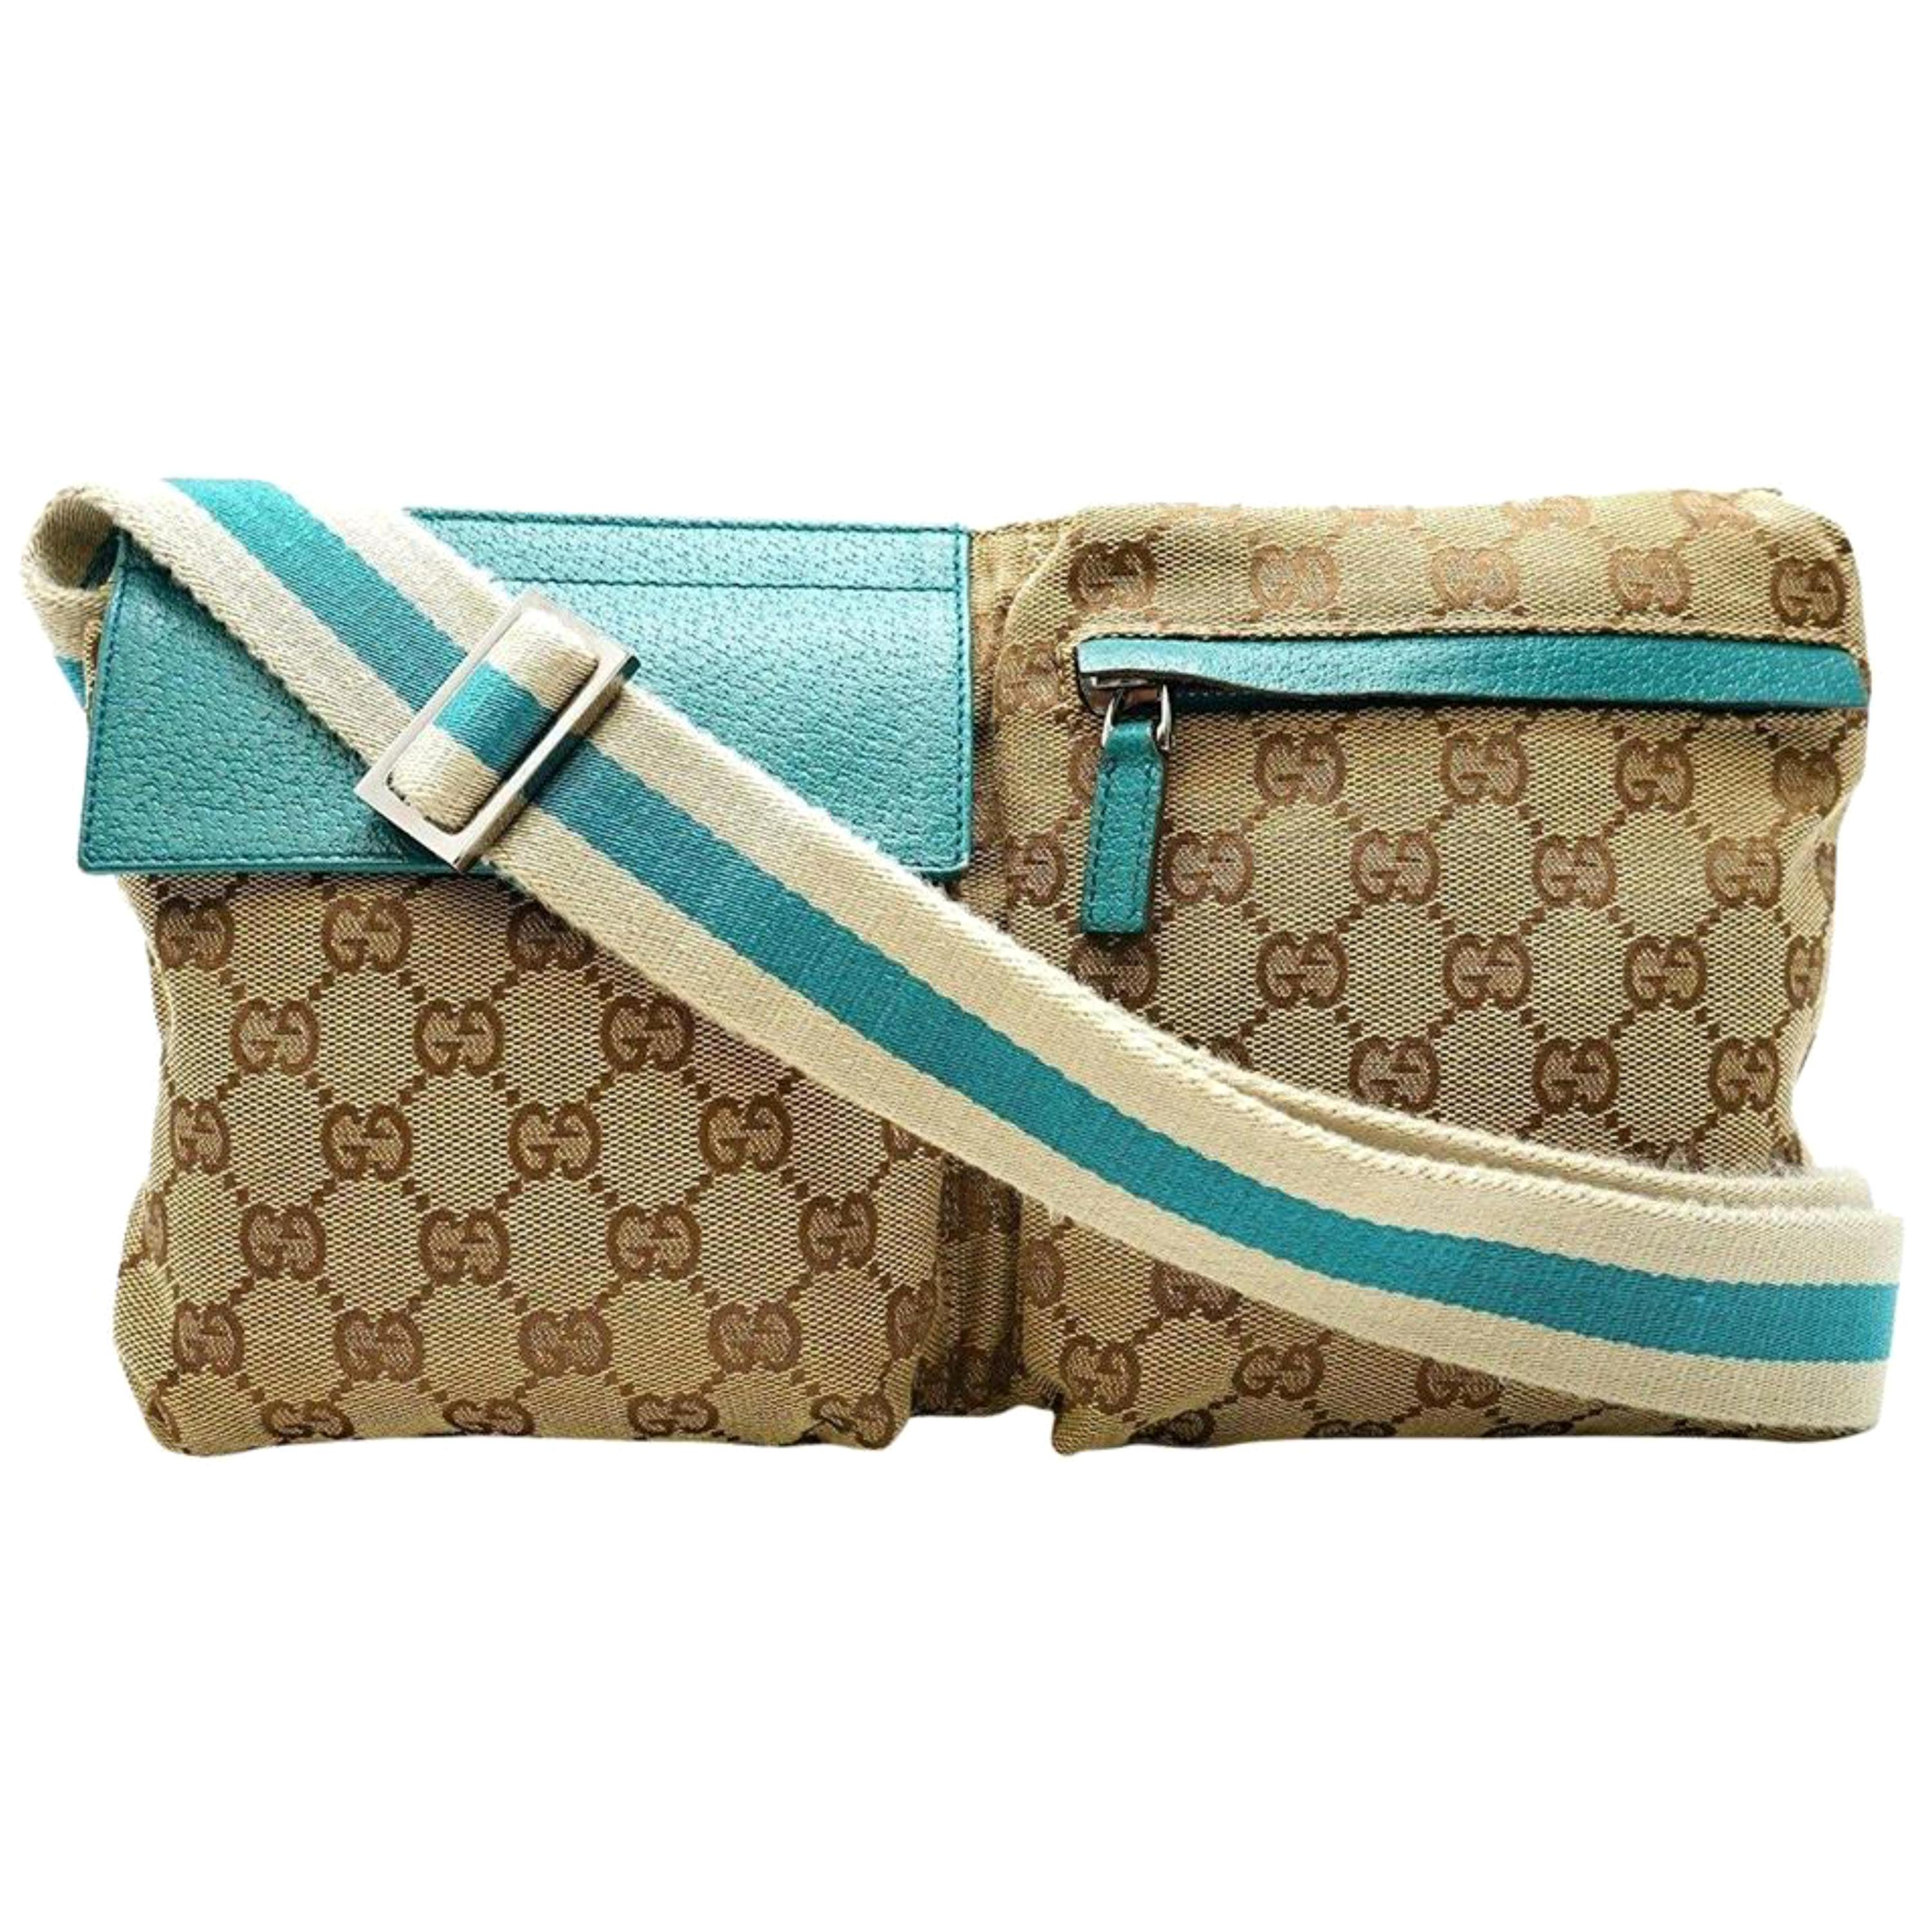 15b787f2f18271 Gucci Monogram Gg Belt Waist Pouch 228313 Torquoise Coated Canvas Cross  Body Bag For Sale at 1stdibs